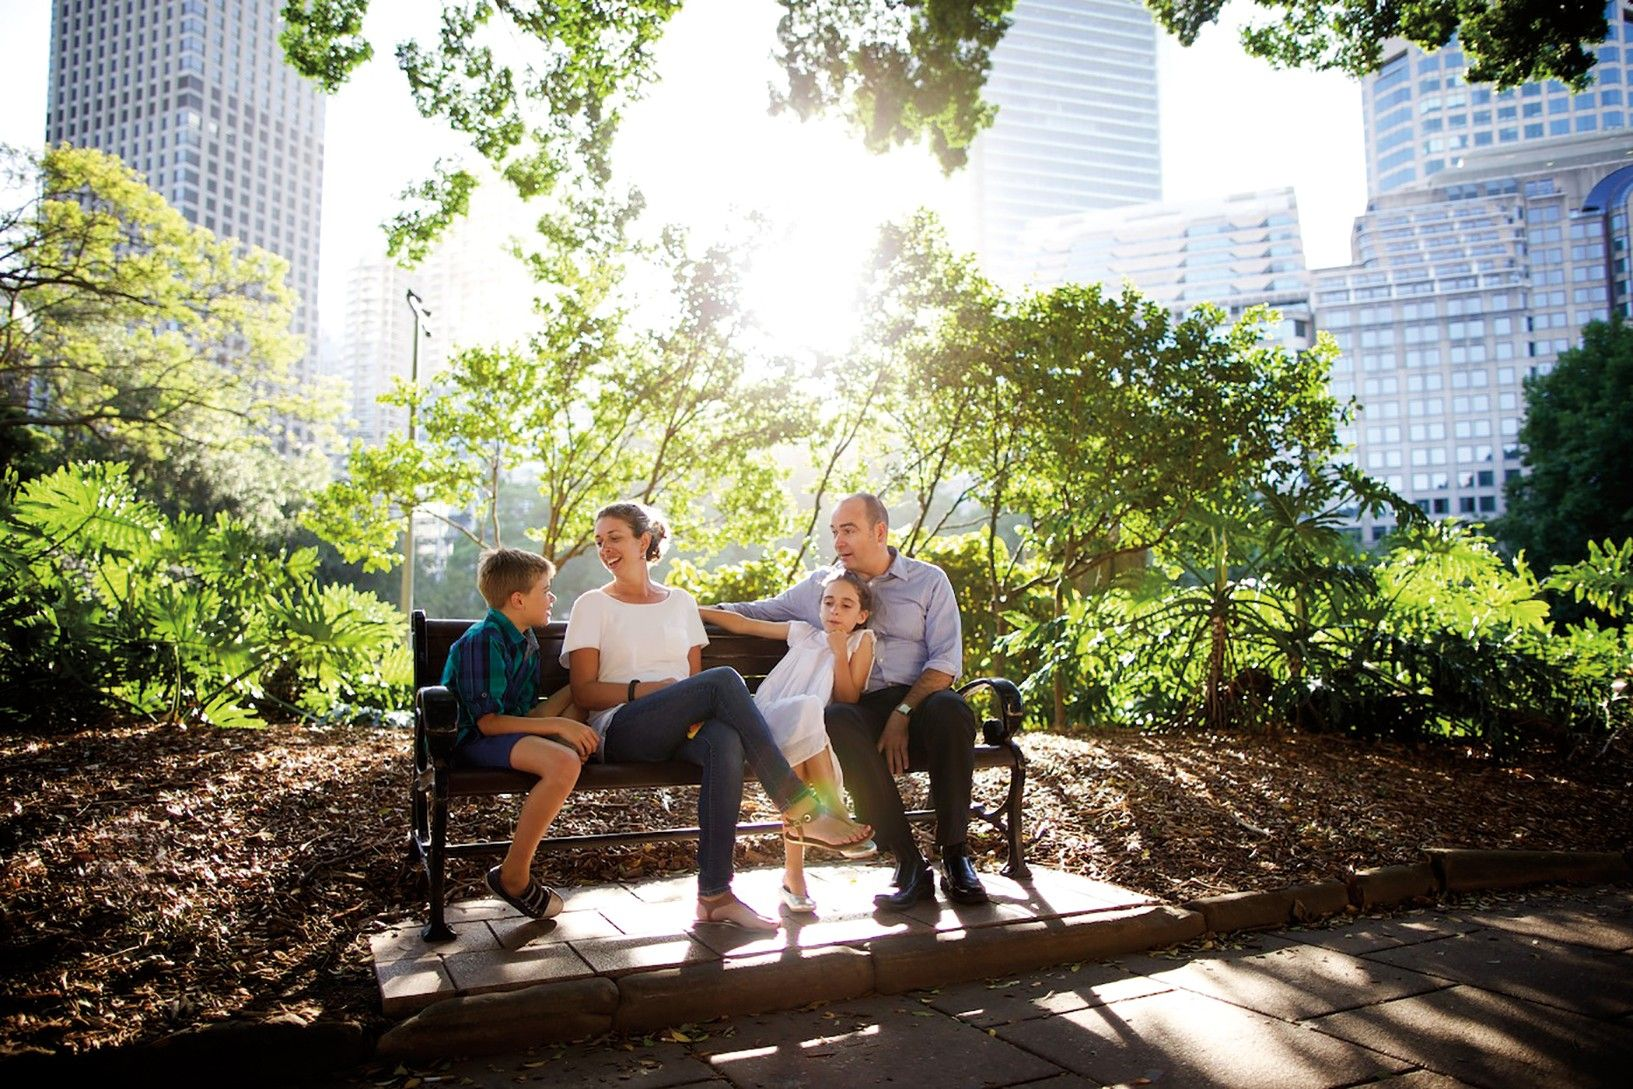 A family in Australia sits together on a park bench.